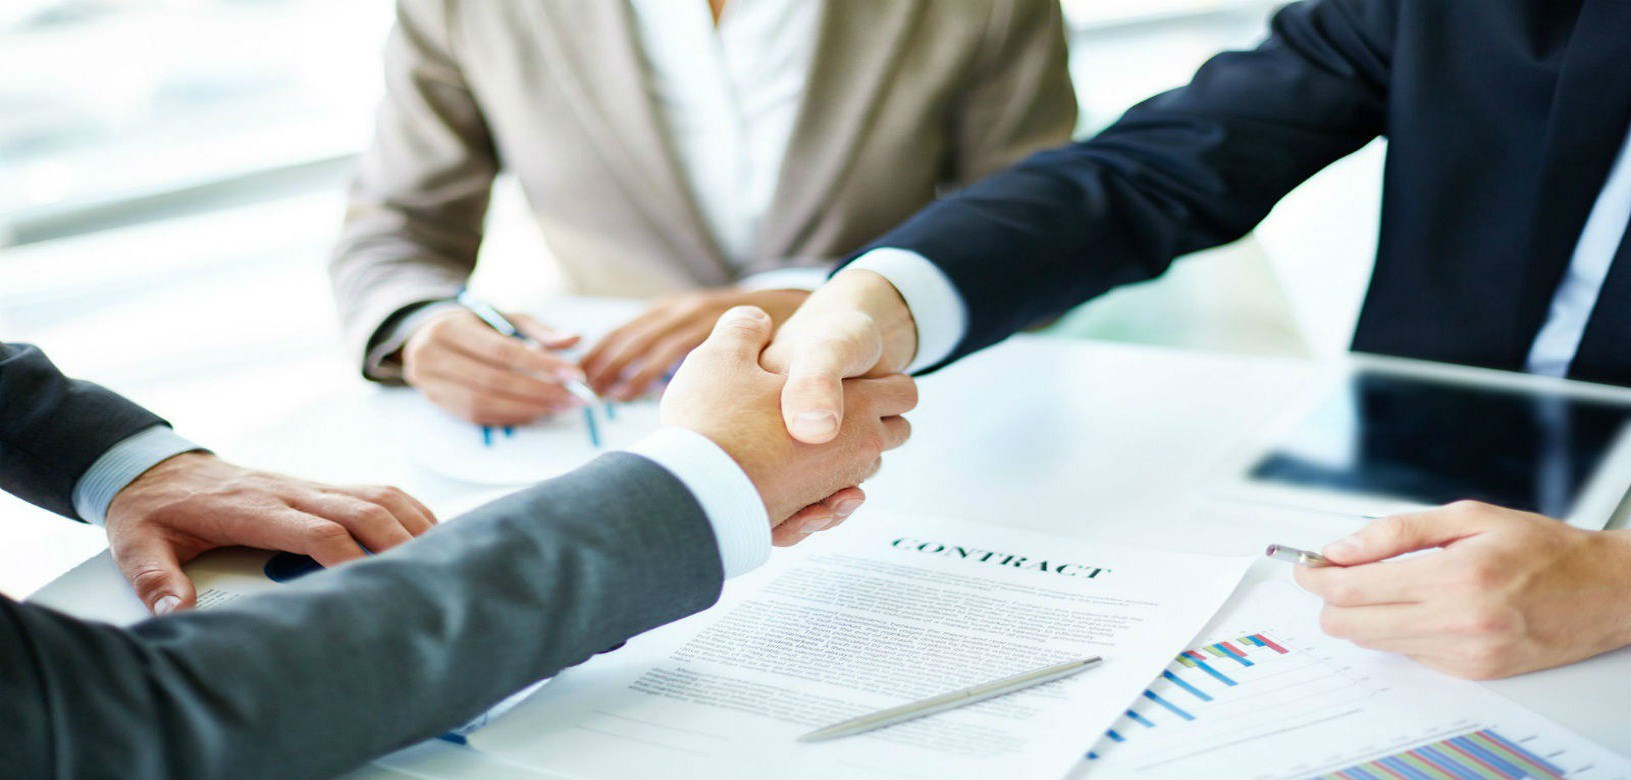 Finding A Professional And Helpful Credit Report Document